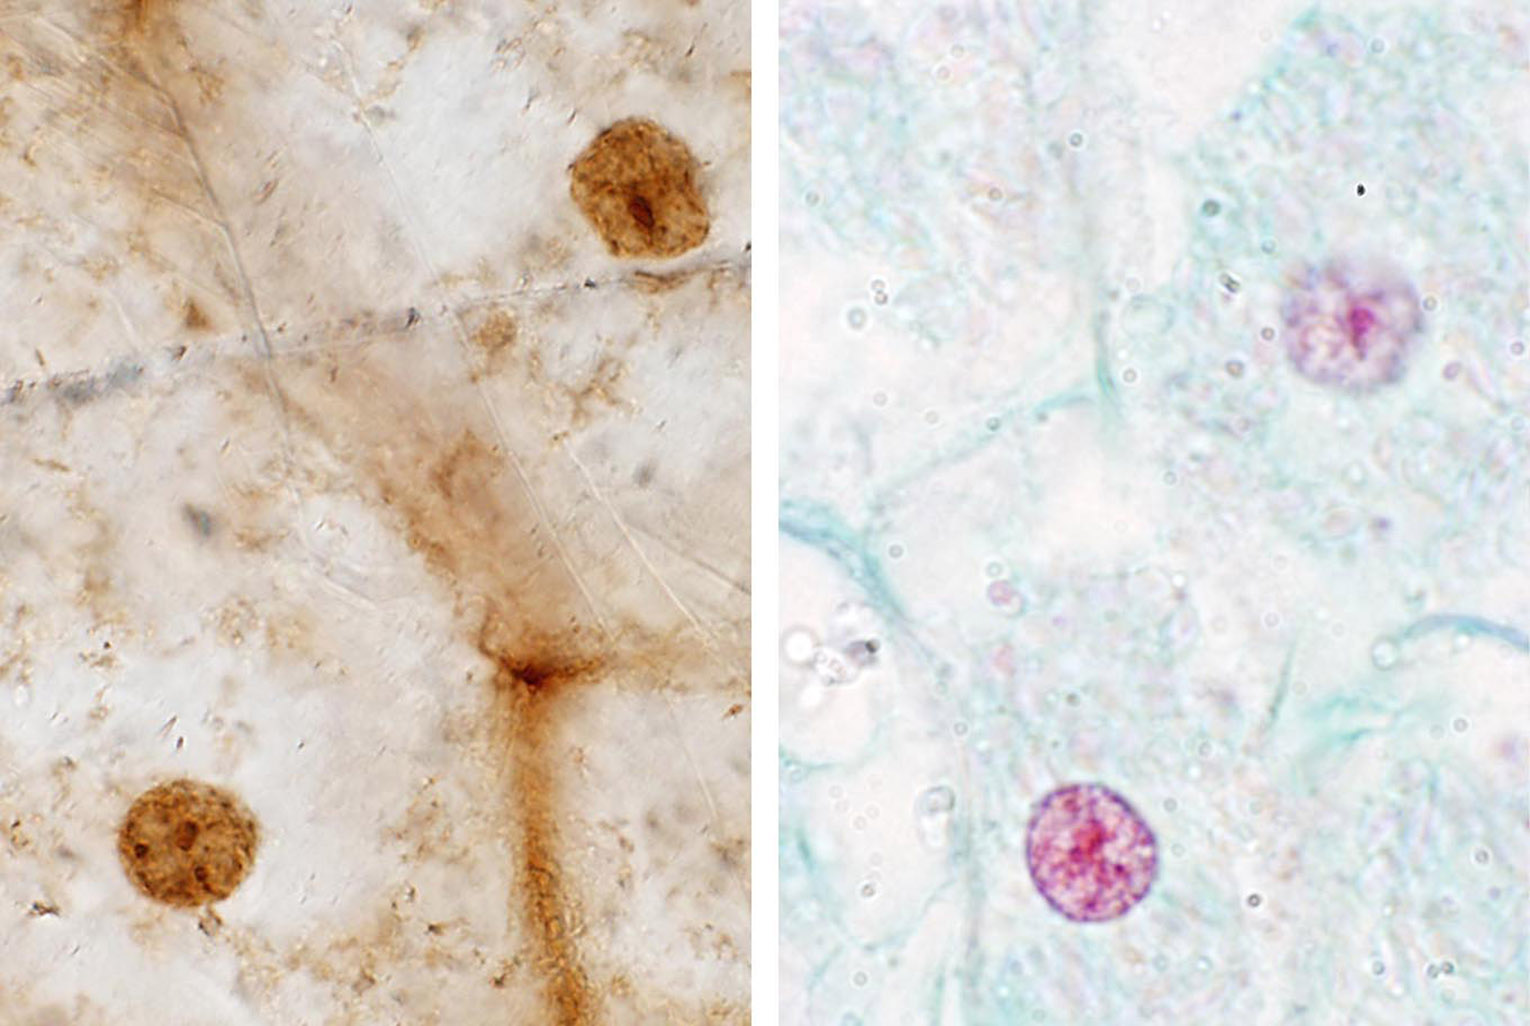 Fossilized cells and nuclei (left) and their modern equivalents.